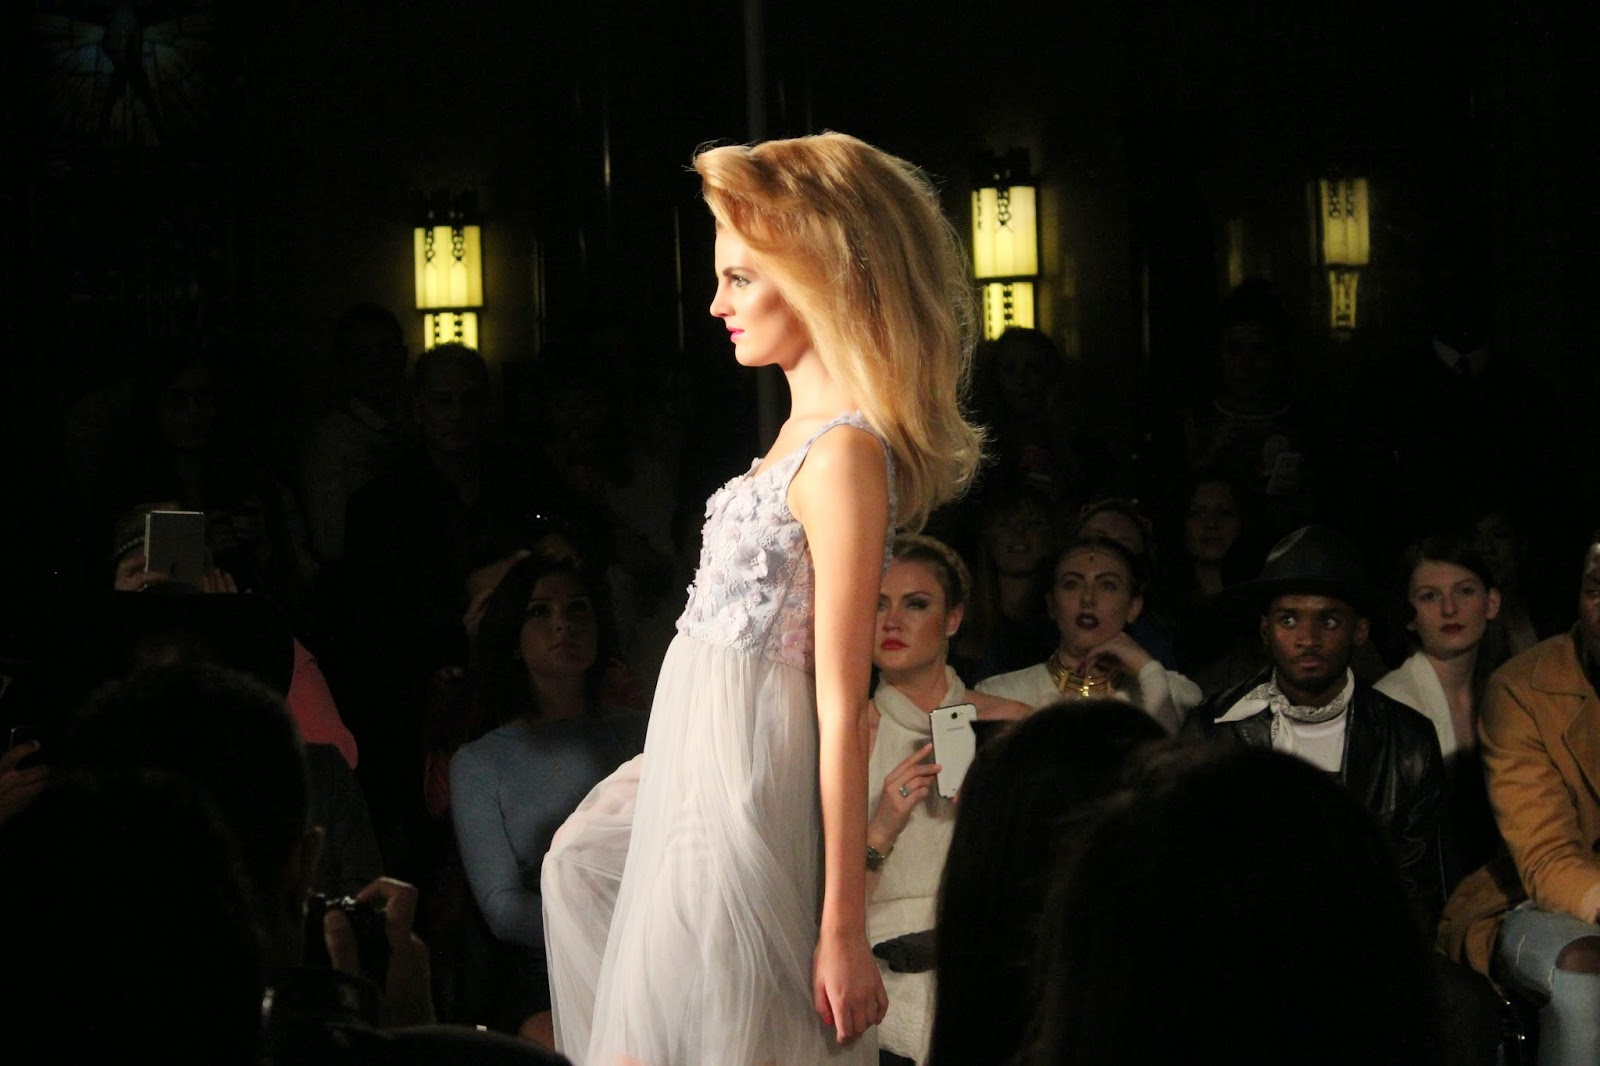 london-fashion-week-2014-lfw-spring-summer-2015-blogger-fashion-Hema-Kaul-catwalk-models-freemasons hall-fashion-scout-dress